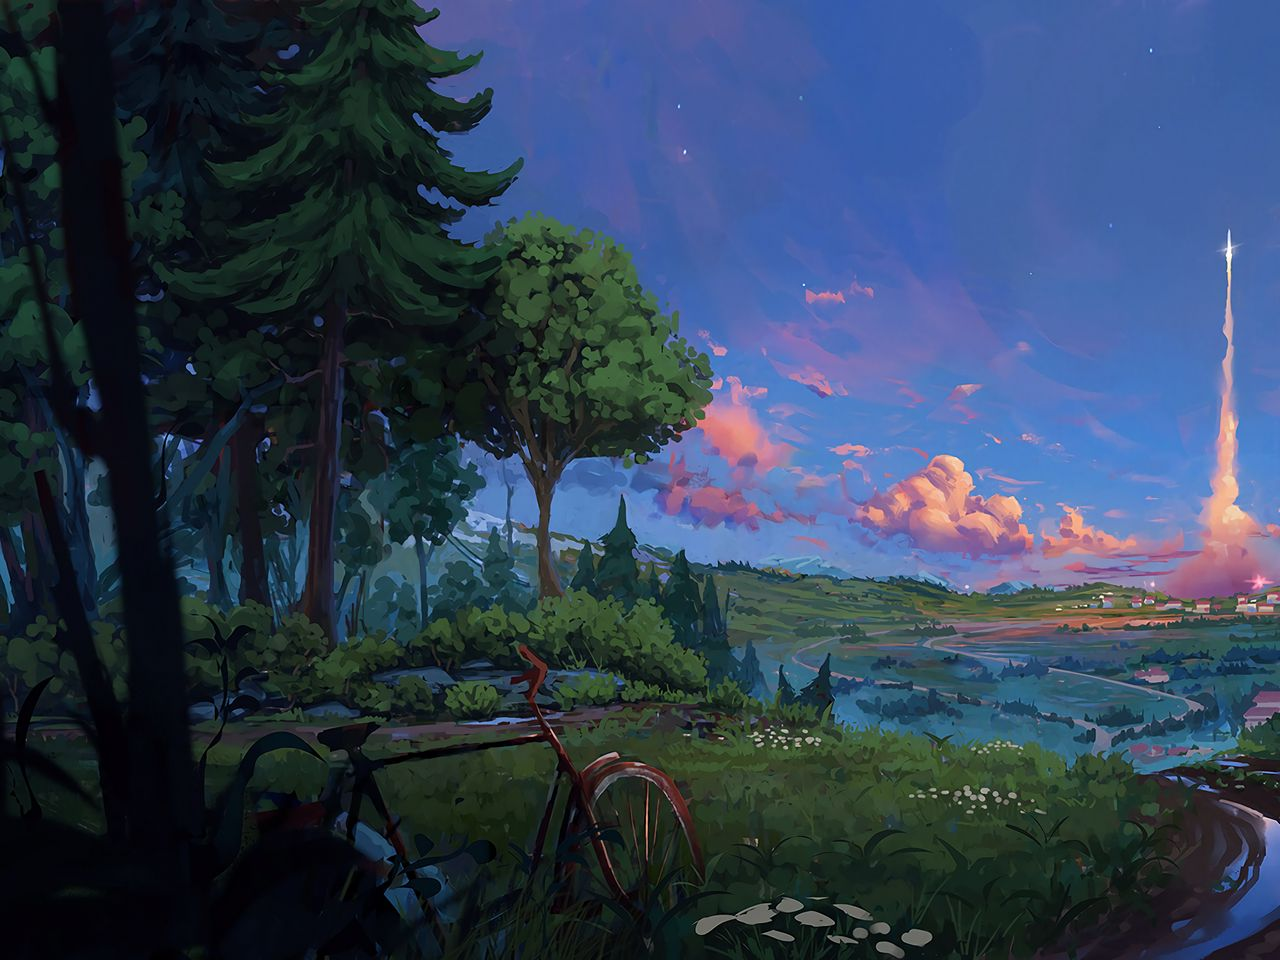 1280x960 Wallpaper bicycle, trees, art, forest, landscape, summer